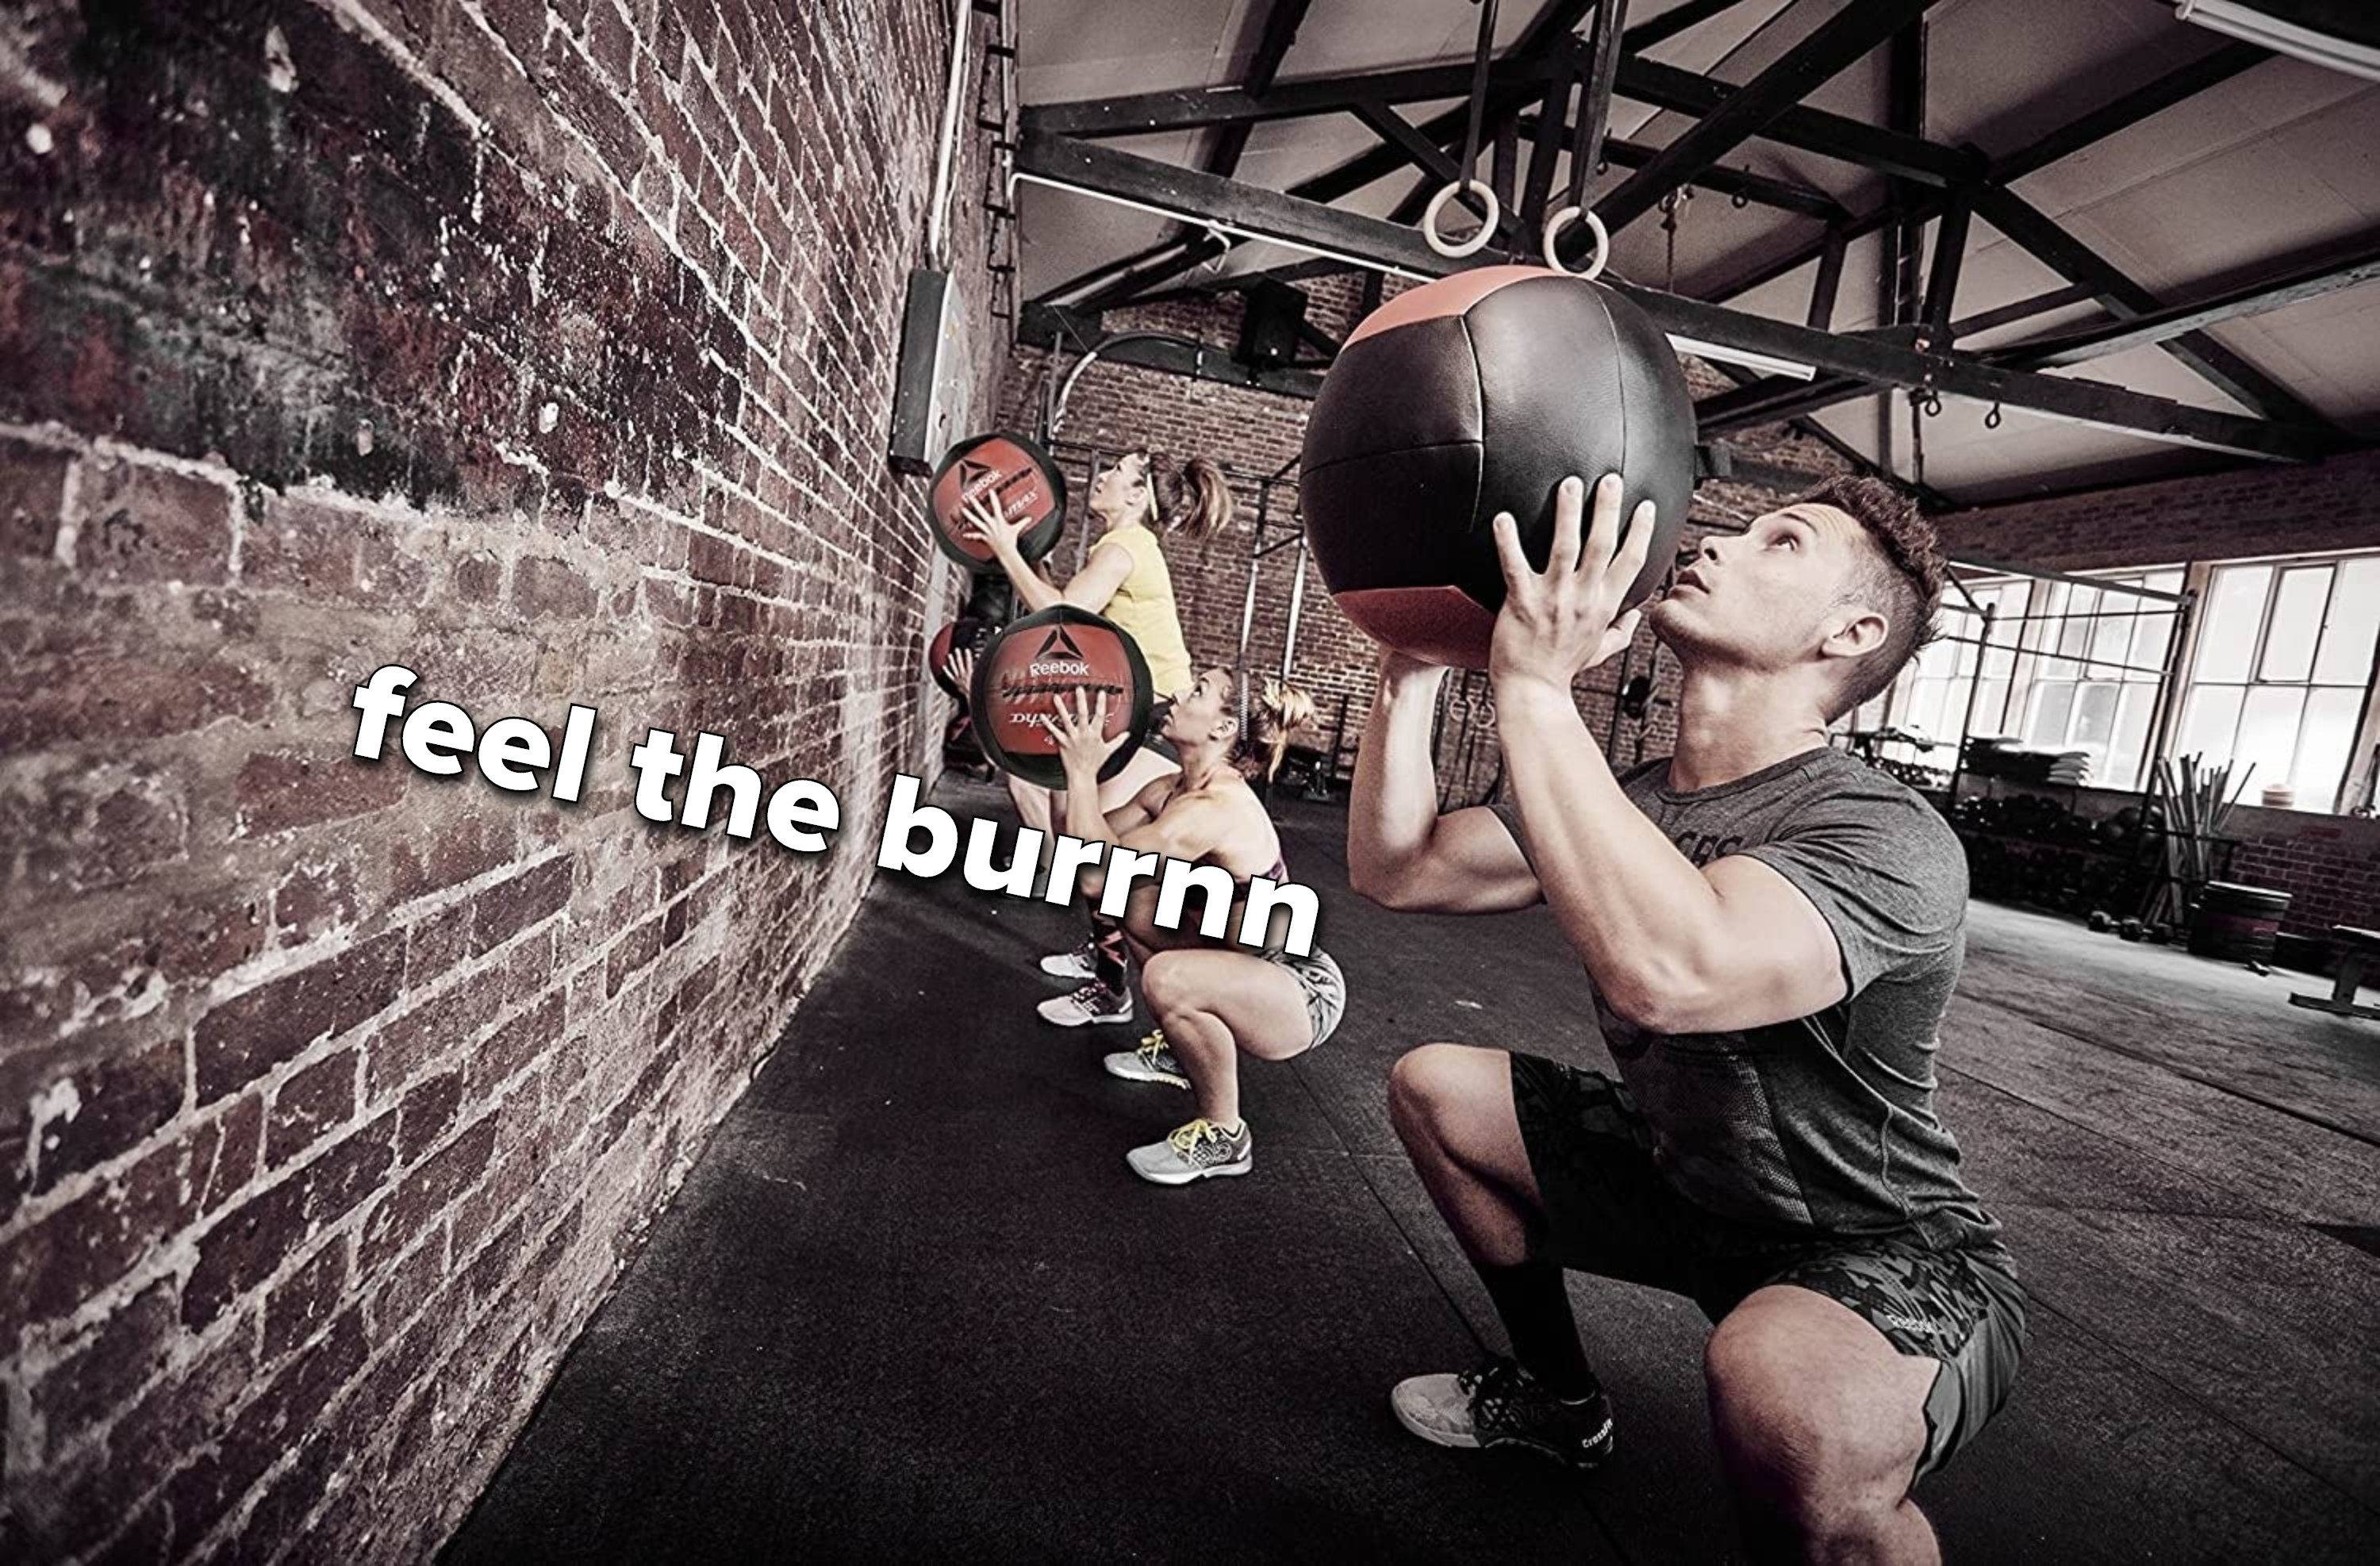 A line of people, squatting while holding medicine balls above their heads